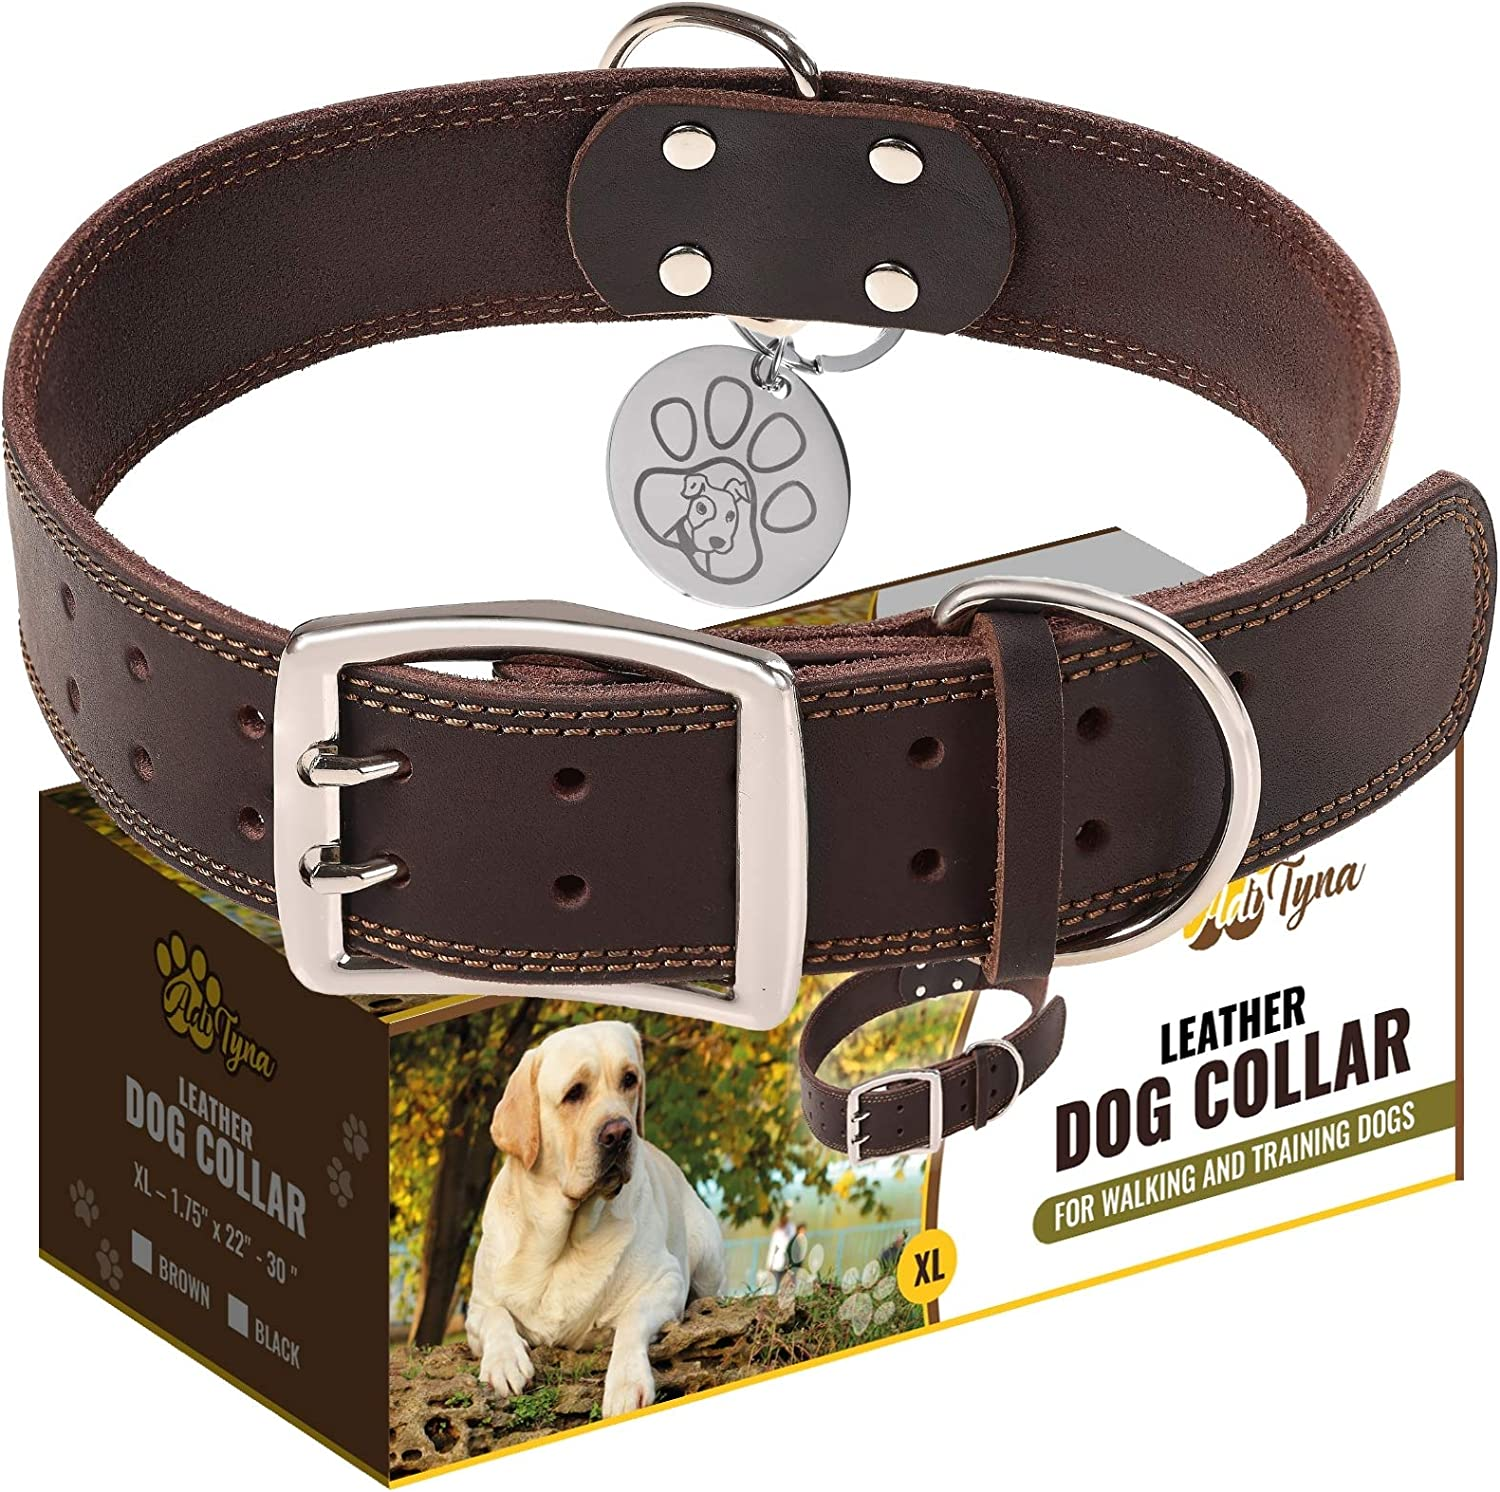 ADNITYNA Leather Dog Collar Review